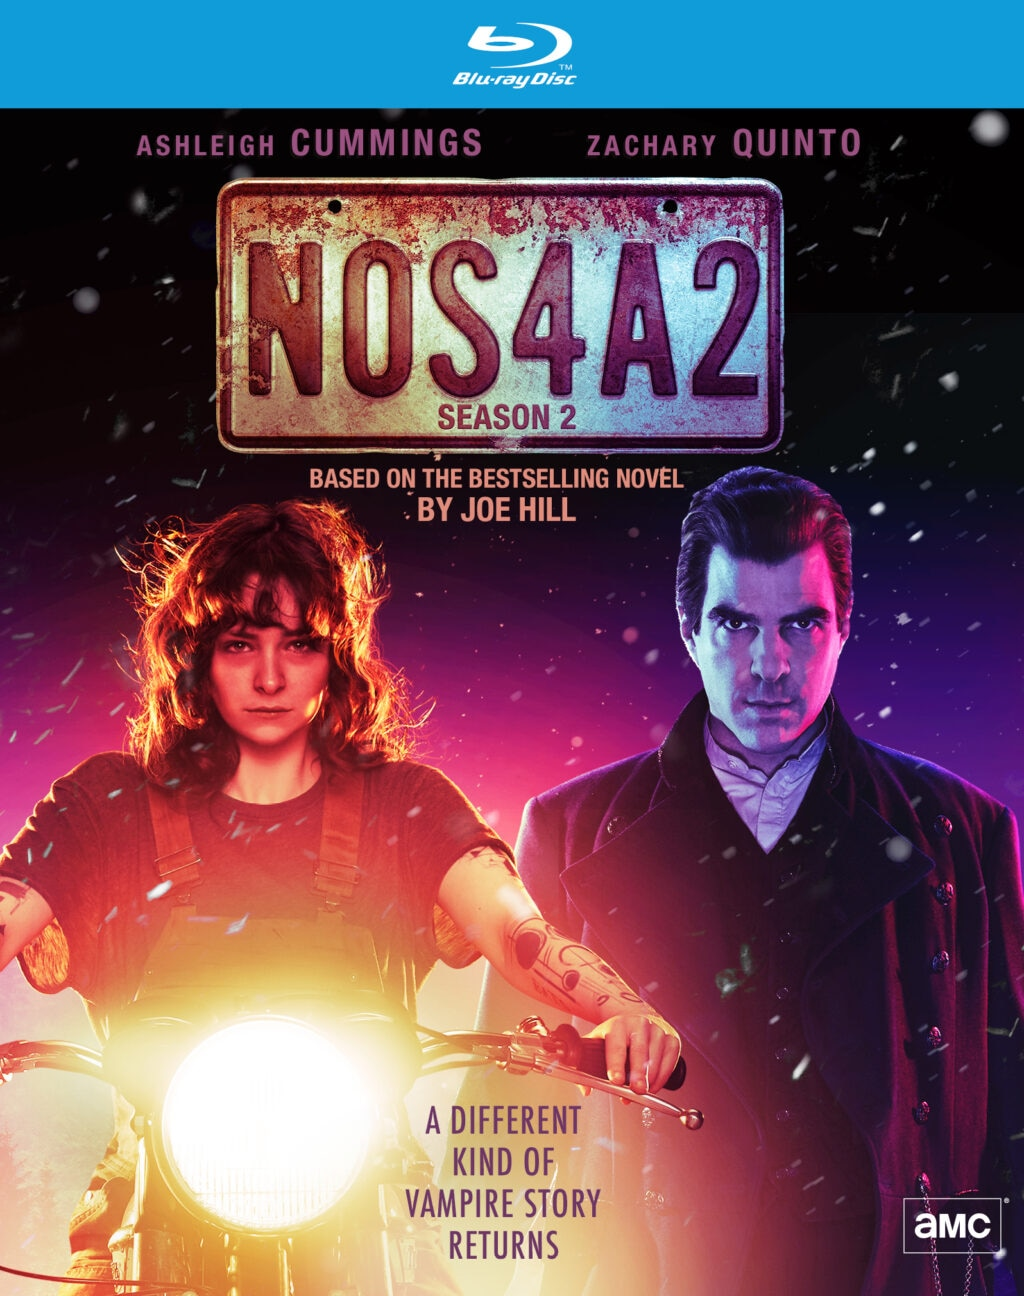 NOS4A2 S2 BD HIC 1024x1296 - NOS4A2 Season 2 Blu-Ray Review - A Fitting End To The AMC Series